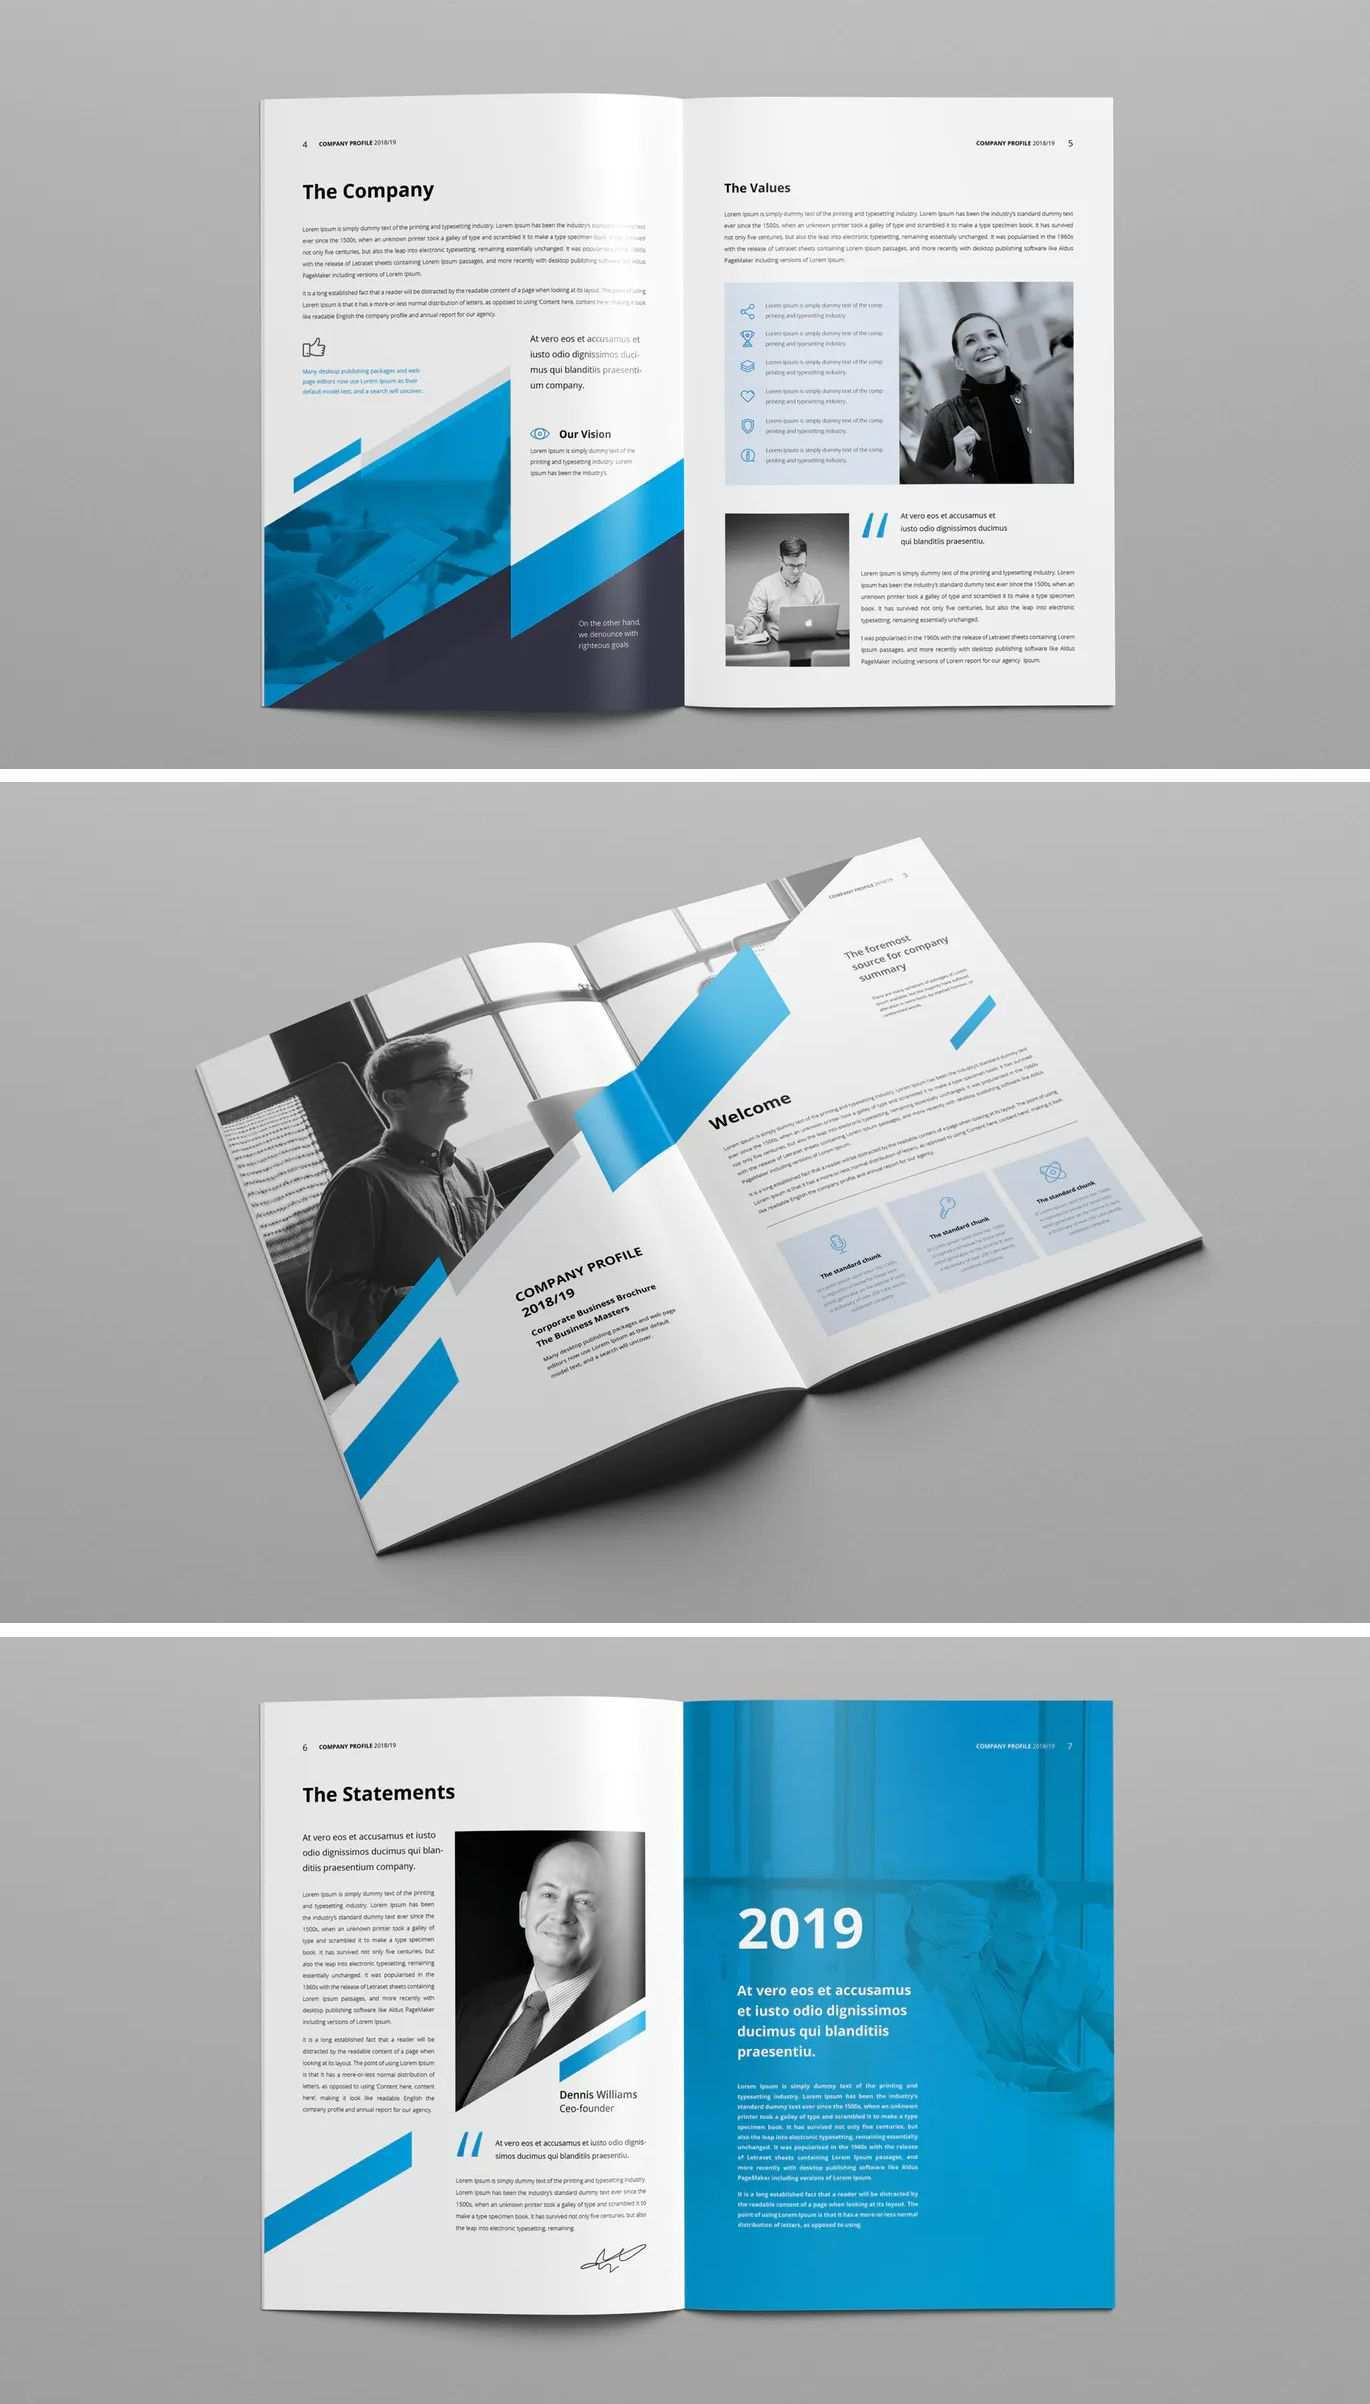 Clean Professional Corporate Brochure Template In 2020 Corporate Brochure Design Corporate Brochure Brochure Design Template